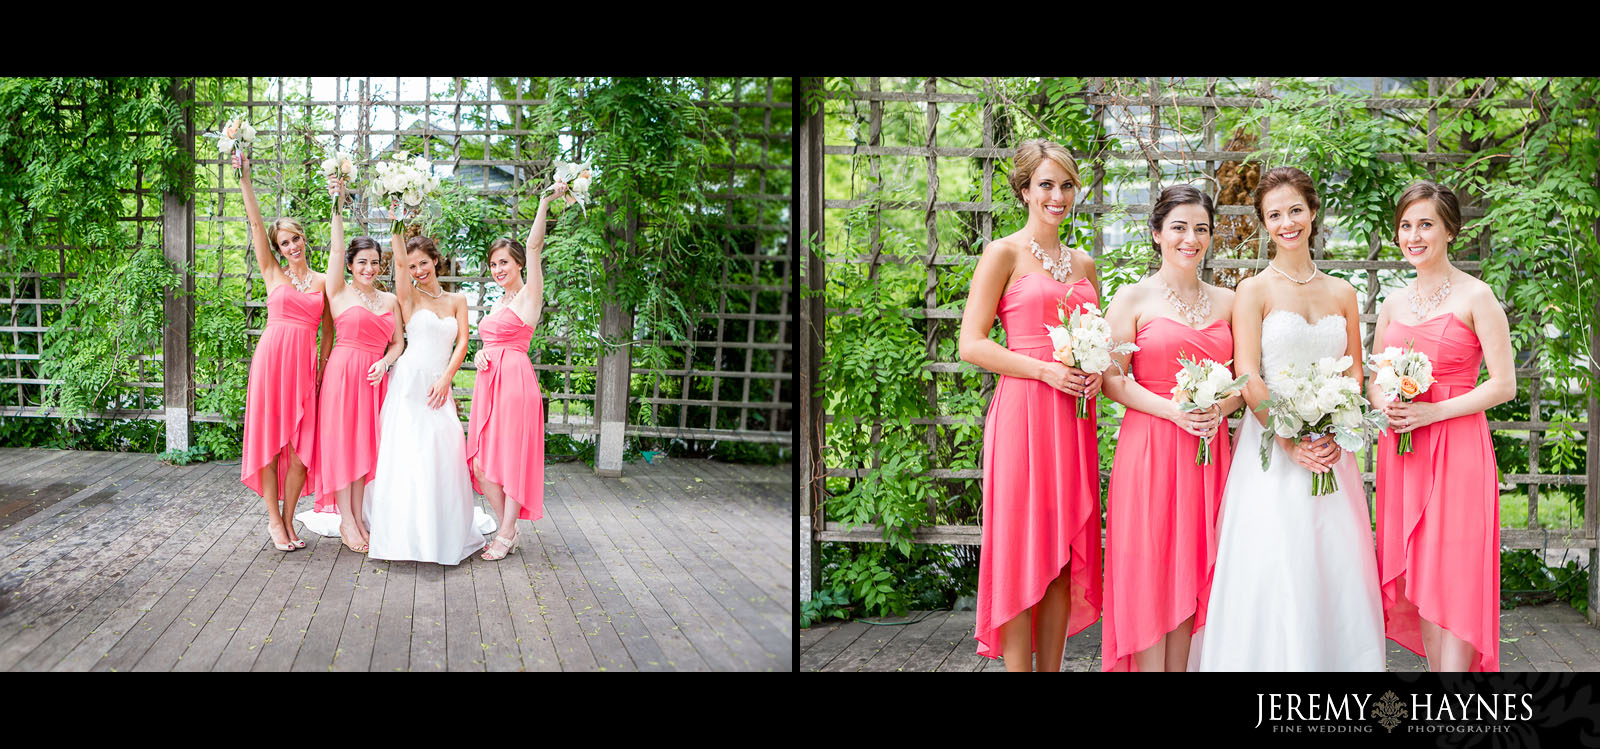 15 Indianapolis Art Center Indianapolis, IN Wedding Bridal Party Outside Photos.jpg